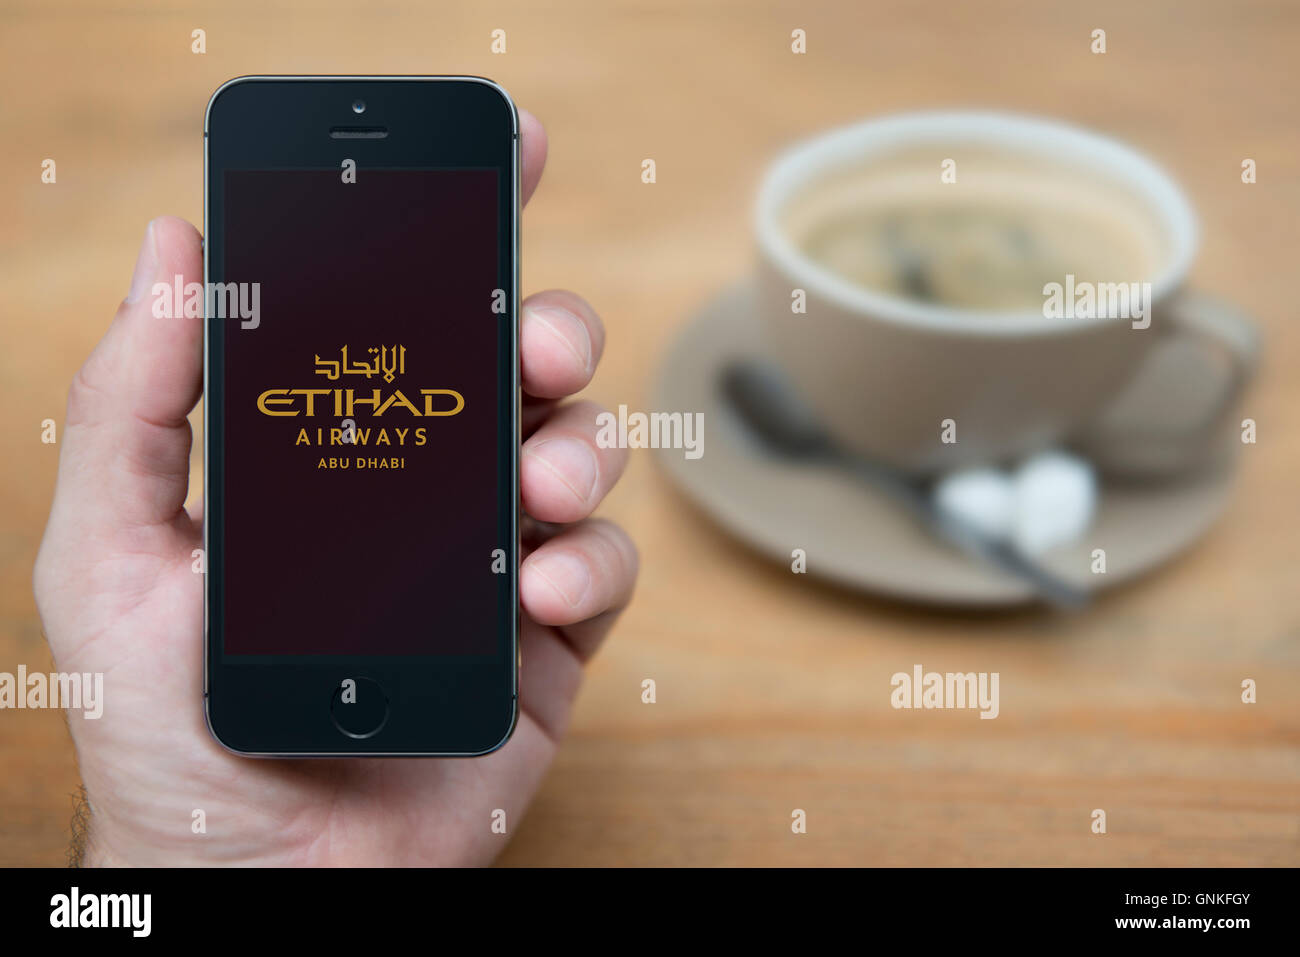 A man looks at his iPhone which displays the Etihad Airways logo, while sat with a cup of coffee (Editorial use - Stock Image